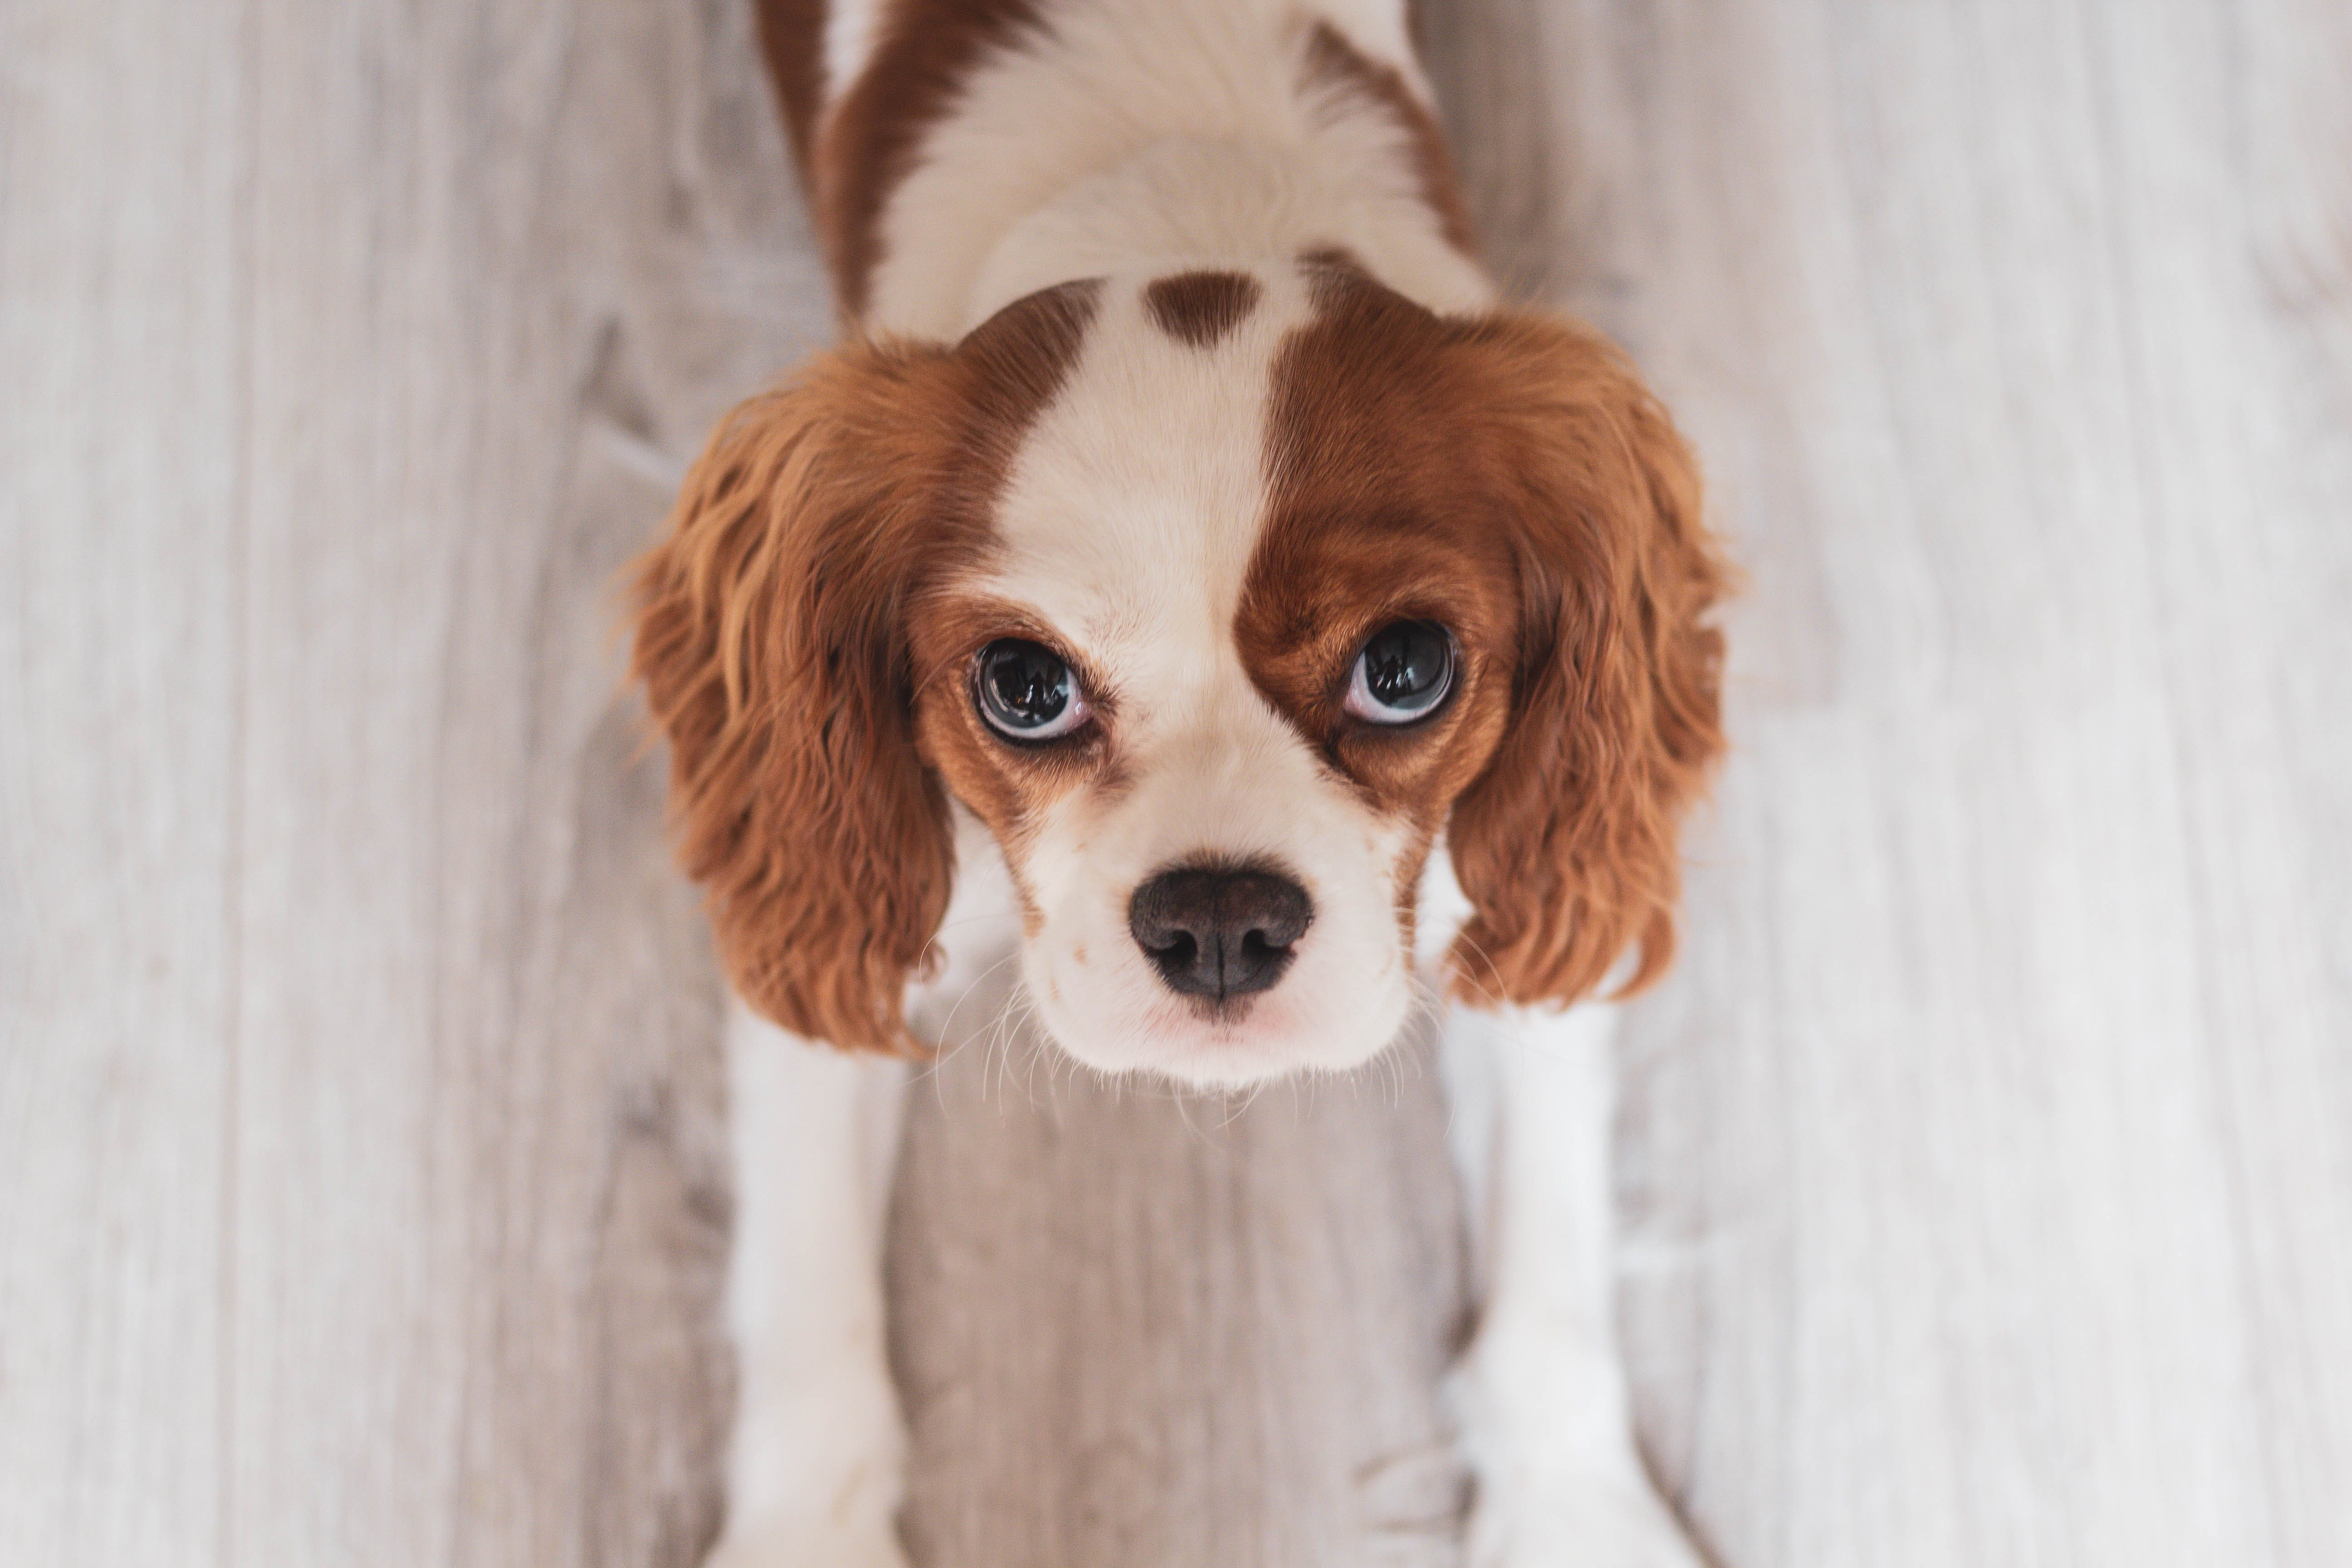 White and Red Cavalier King Charles Spaniel Puppy Close-up Photo